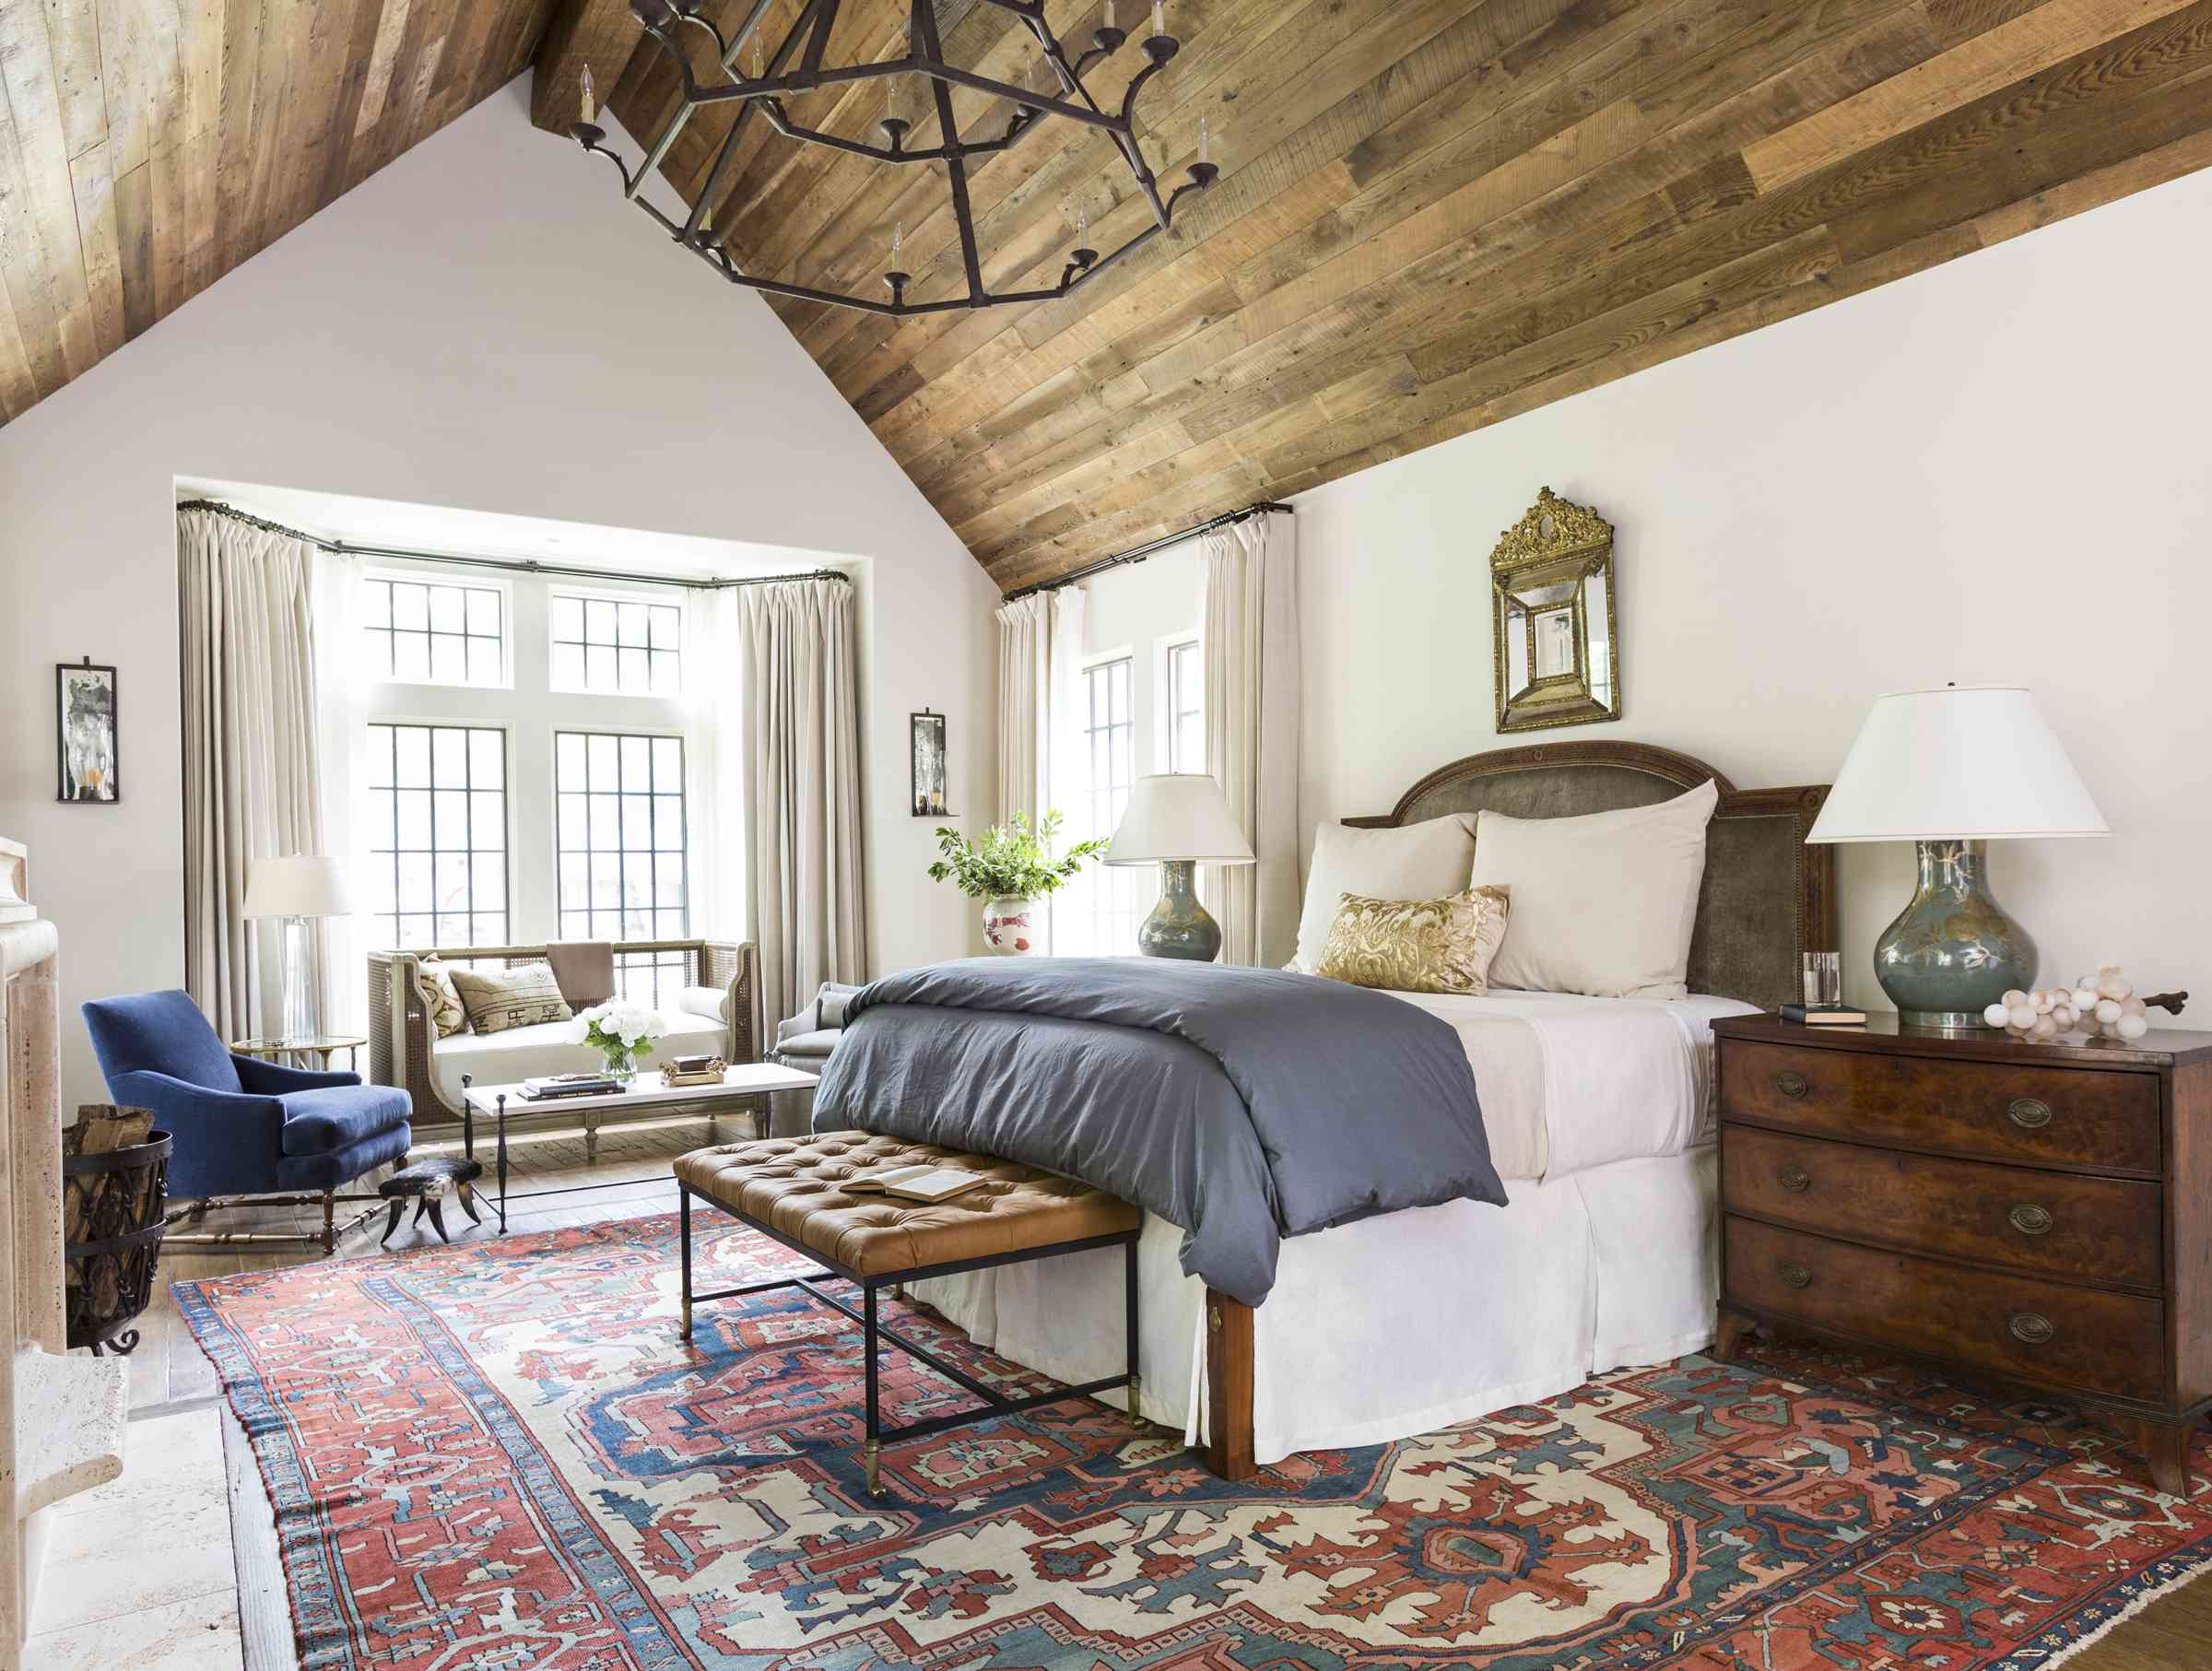 Rustic bedroom with navy accents